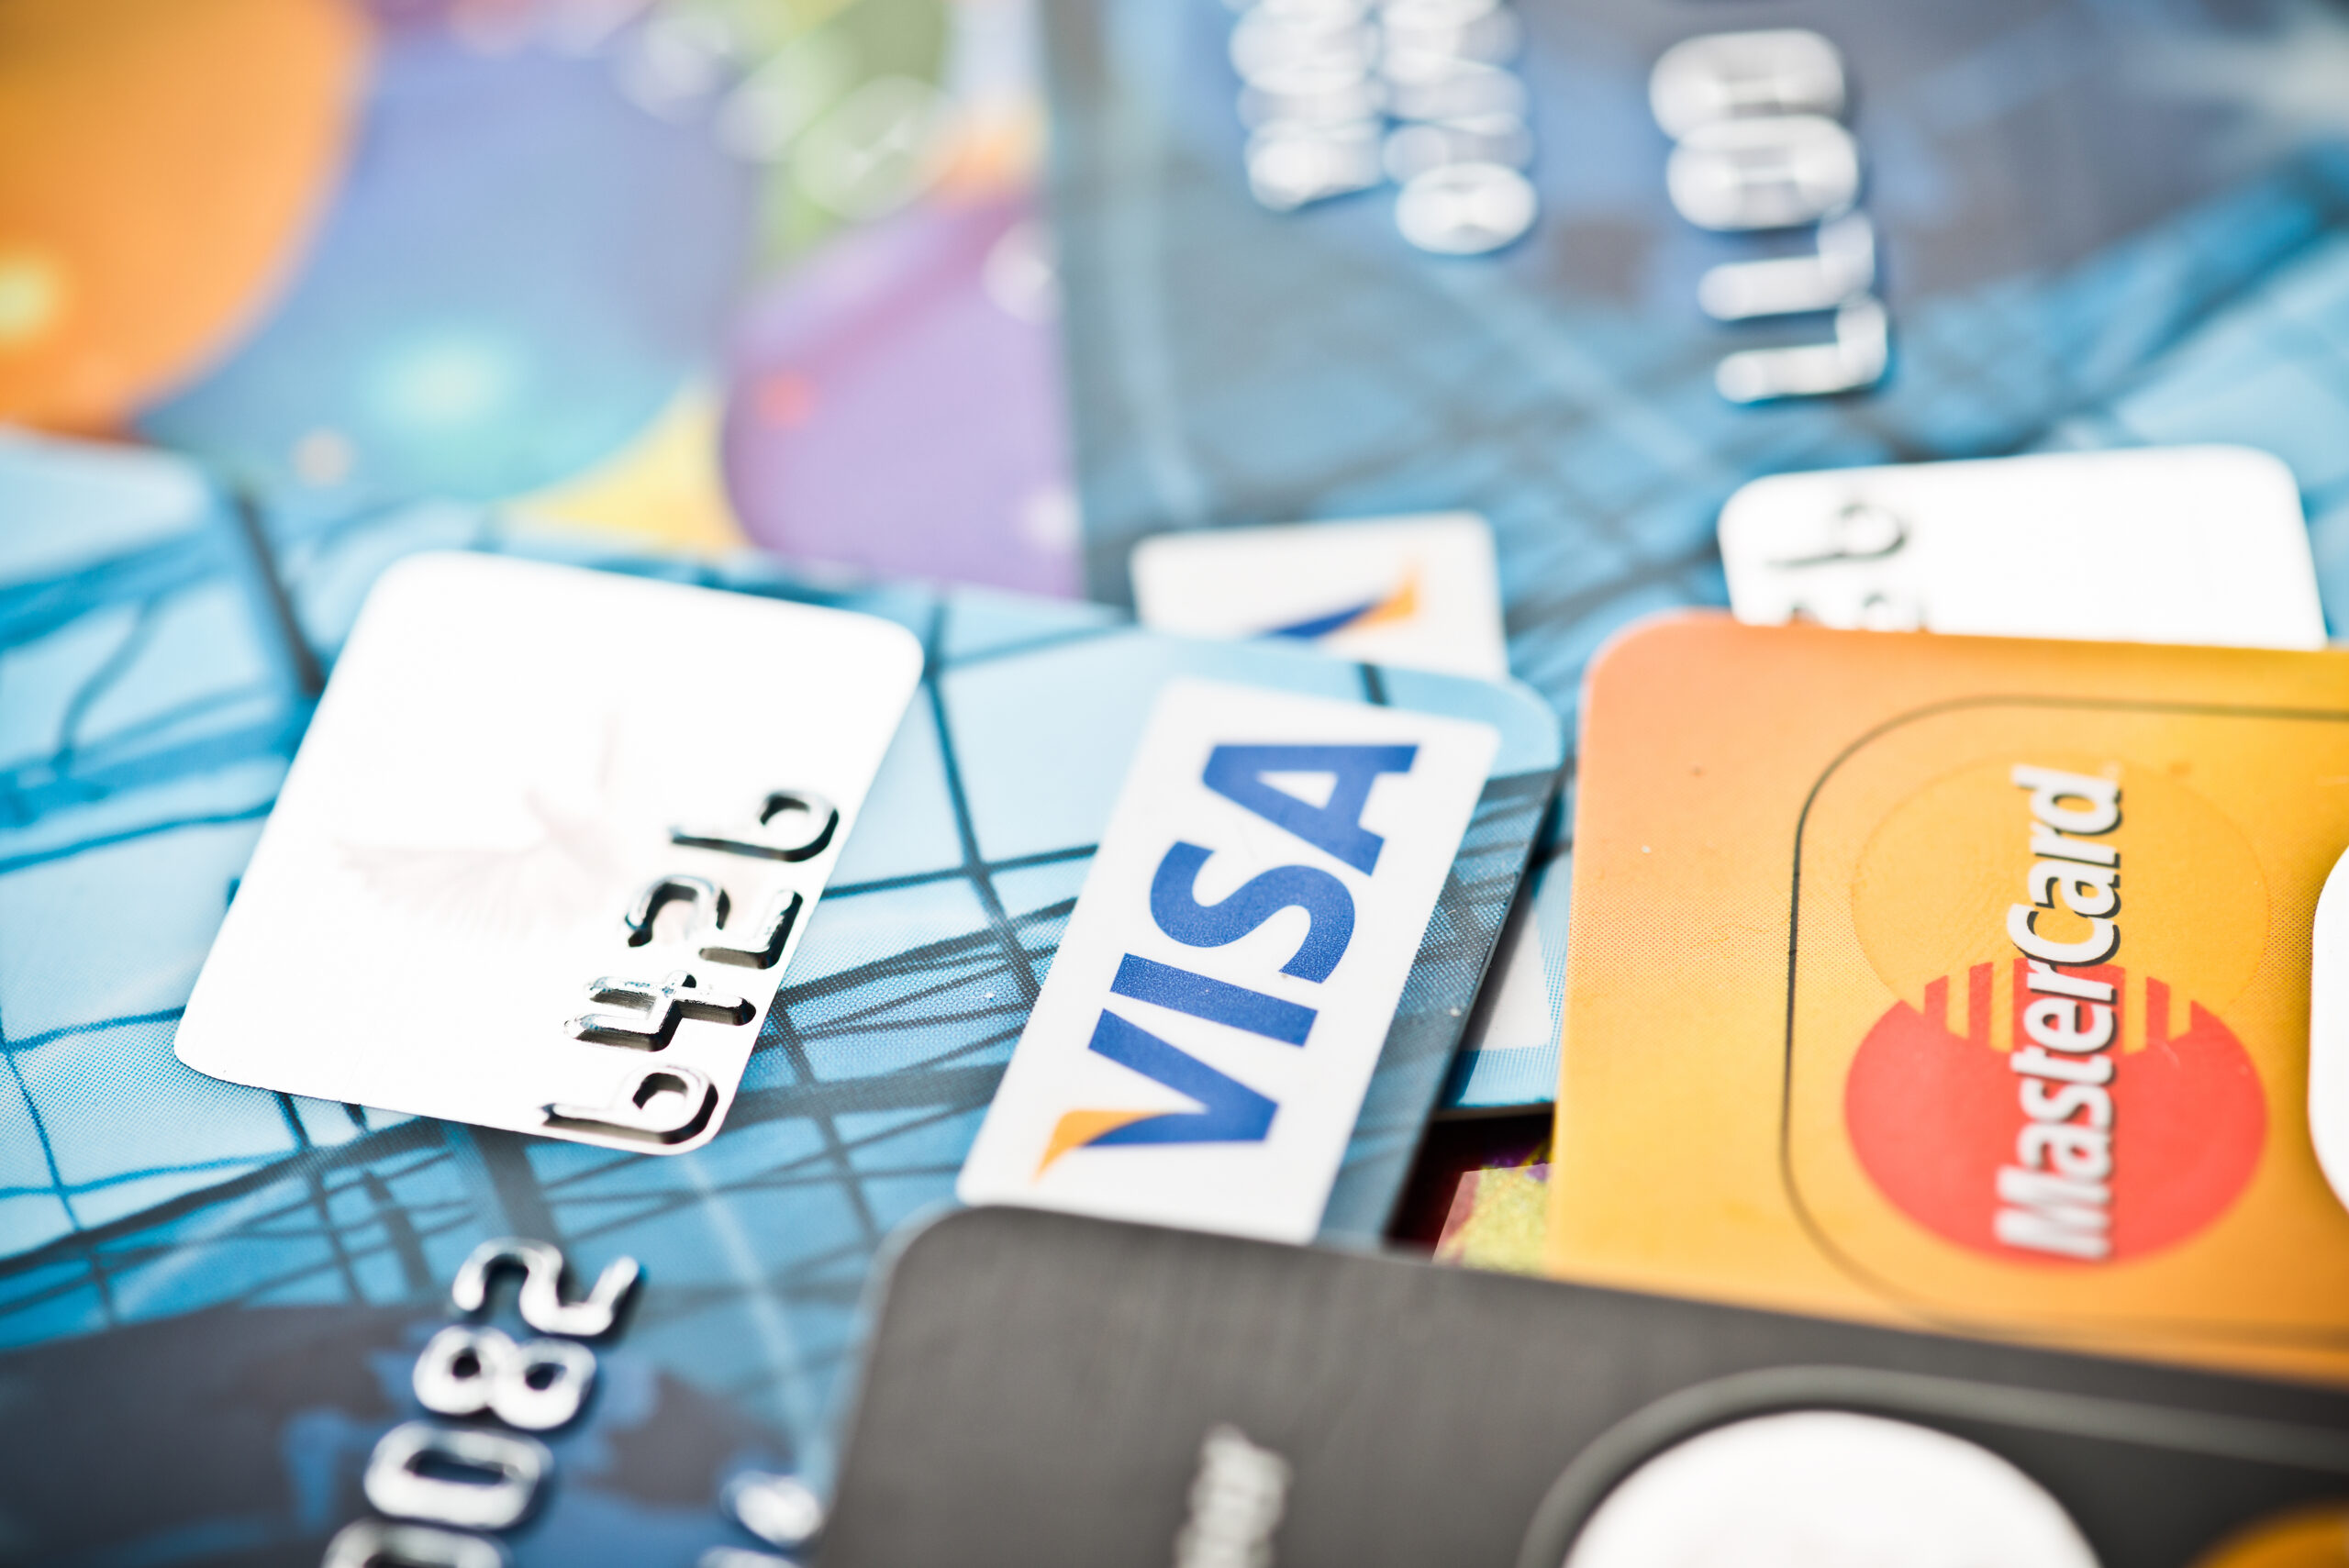 Credit Cards Overlapping